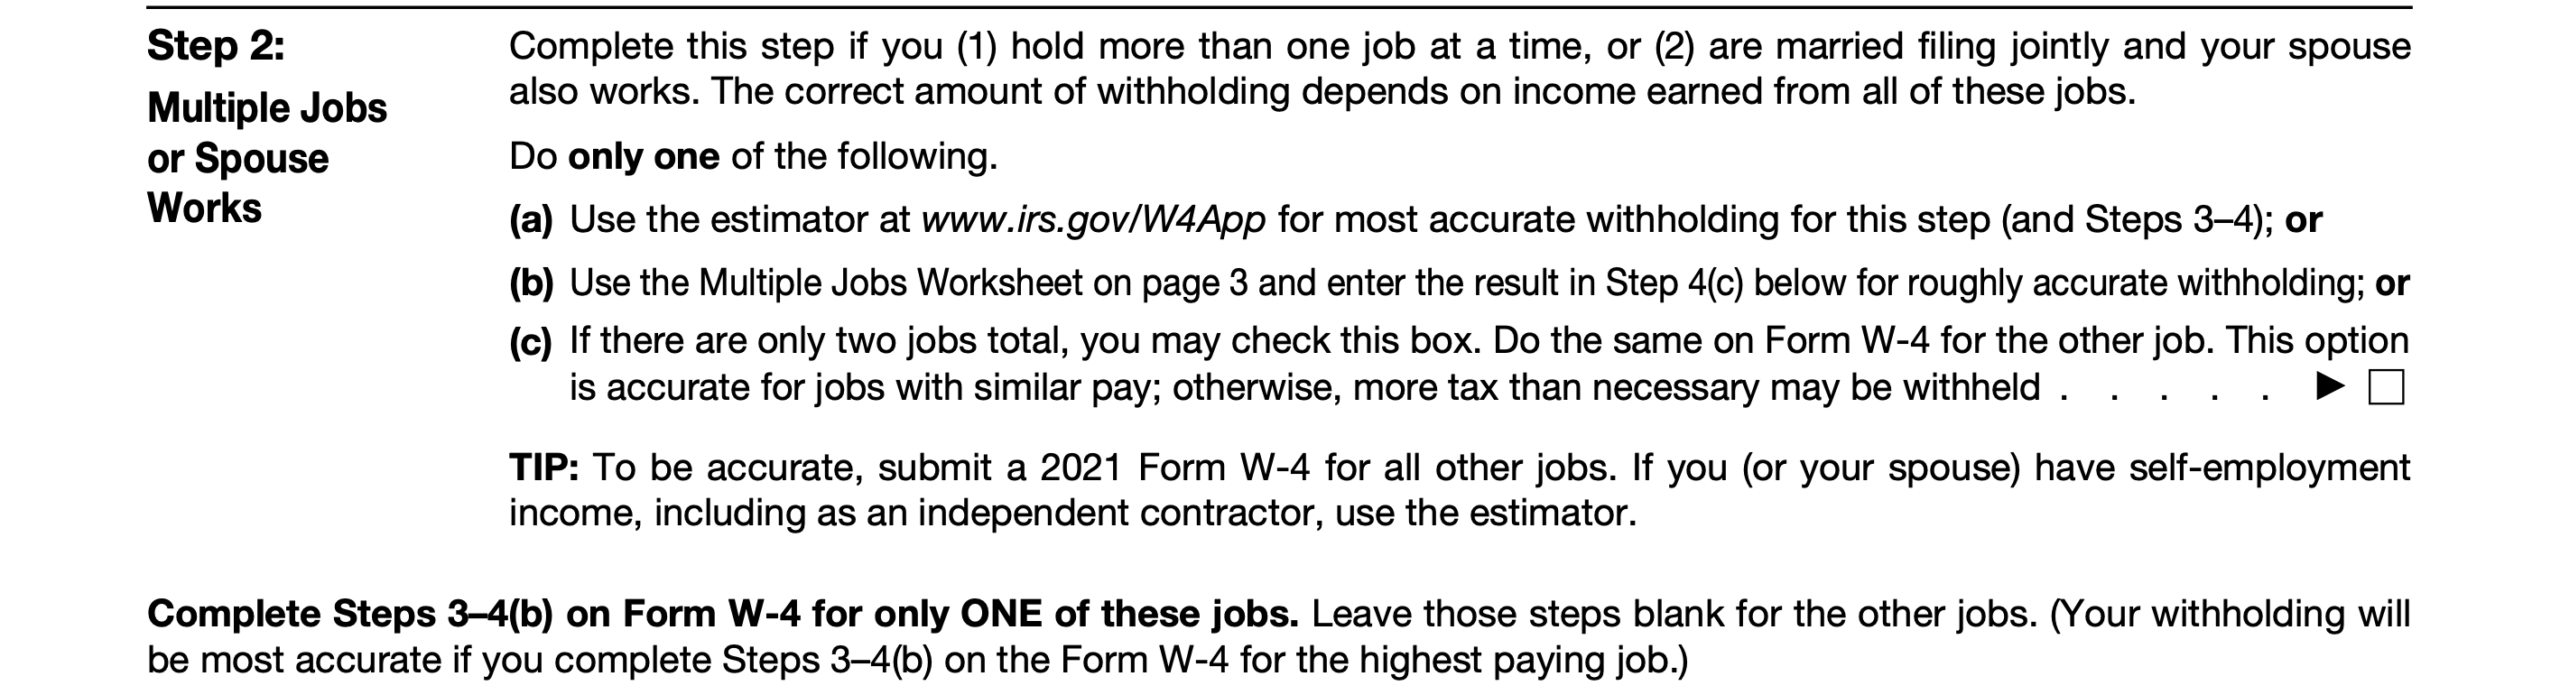 2021 Irs Form W-4: Simple Instructions + Pdf Download in 2021 W-4 Form Printable